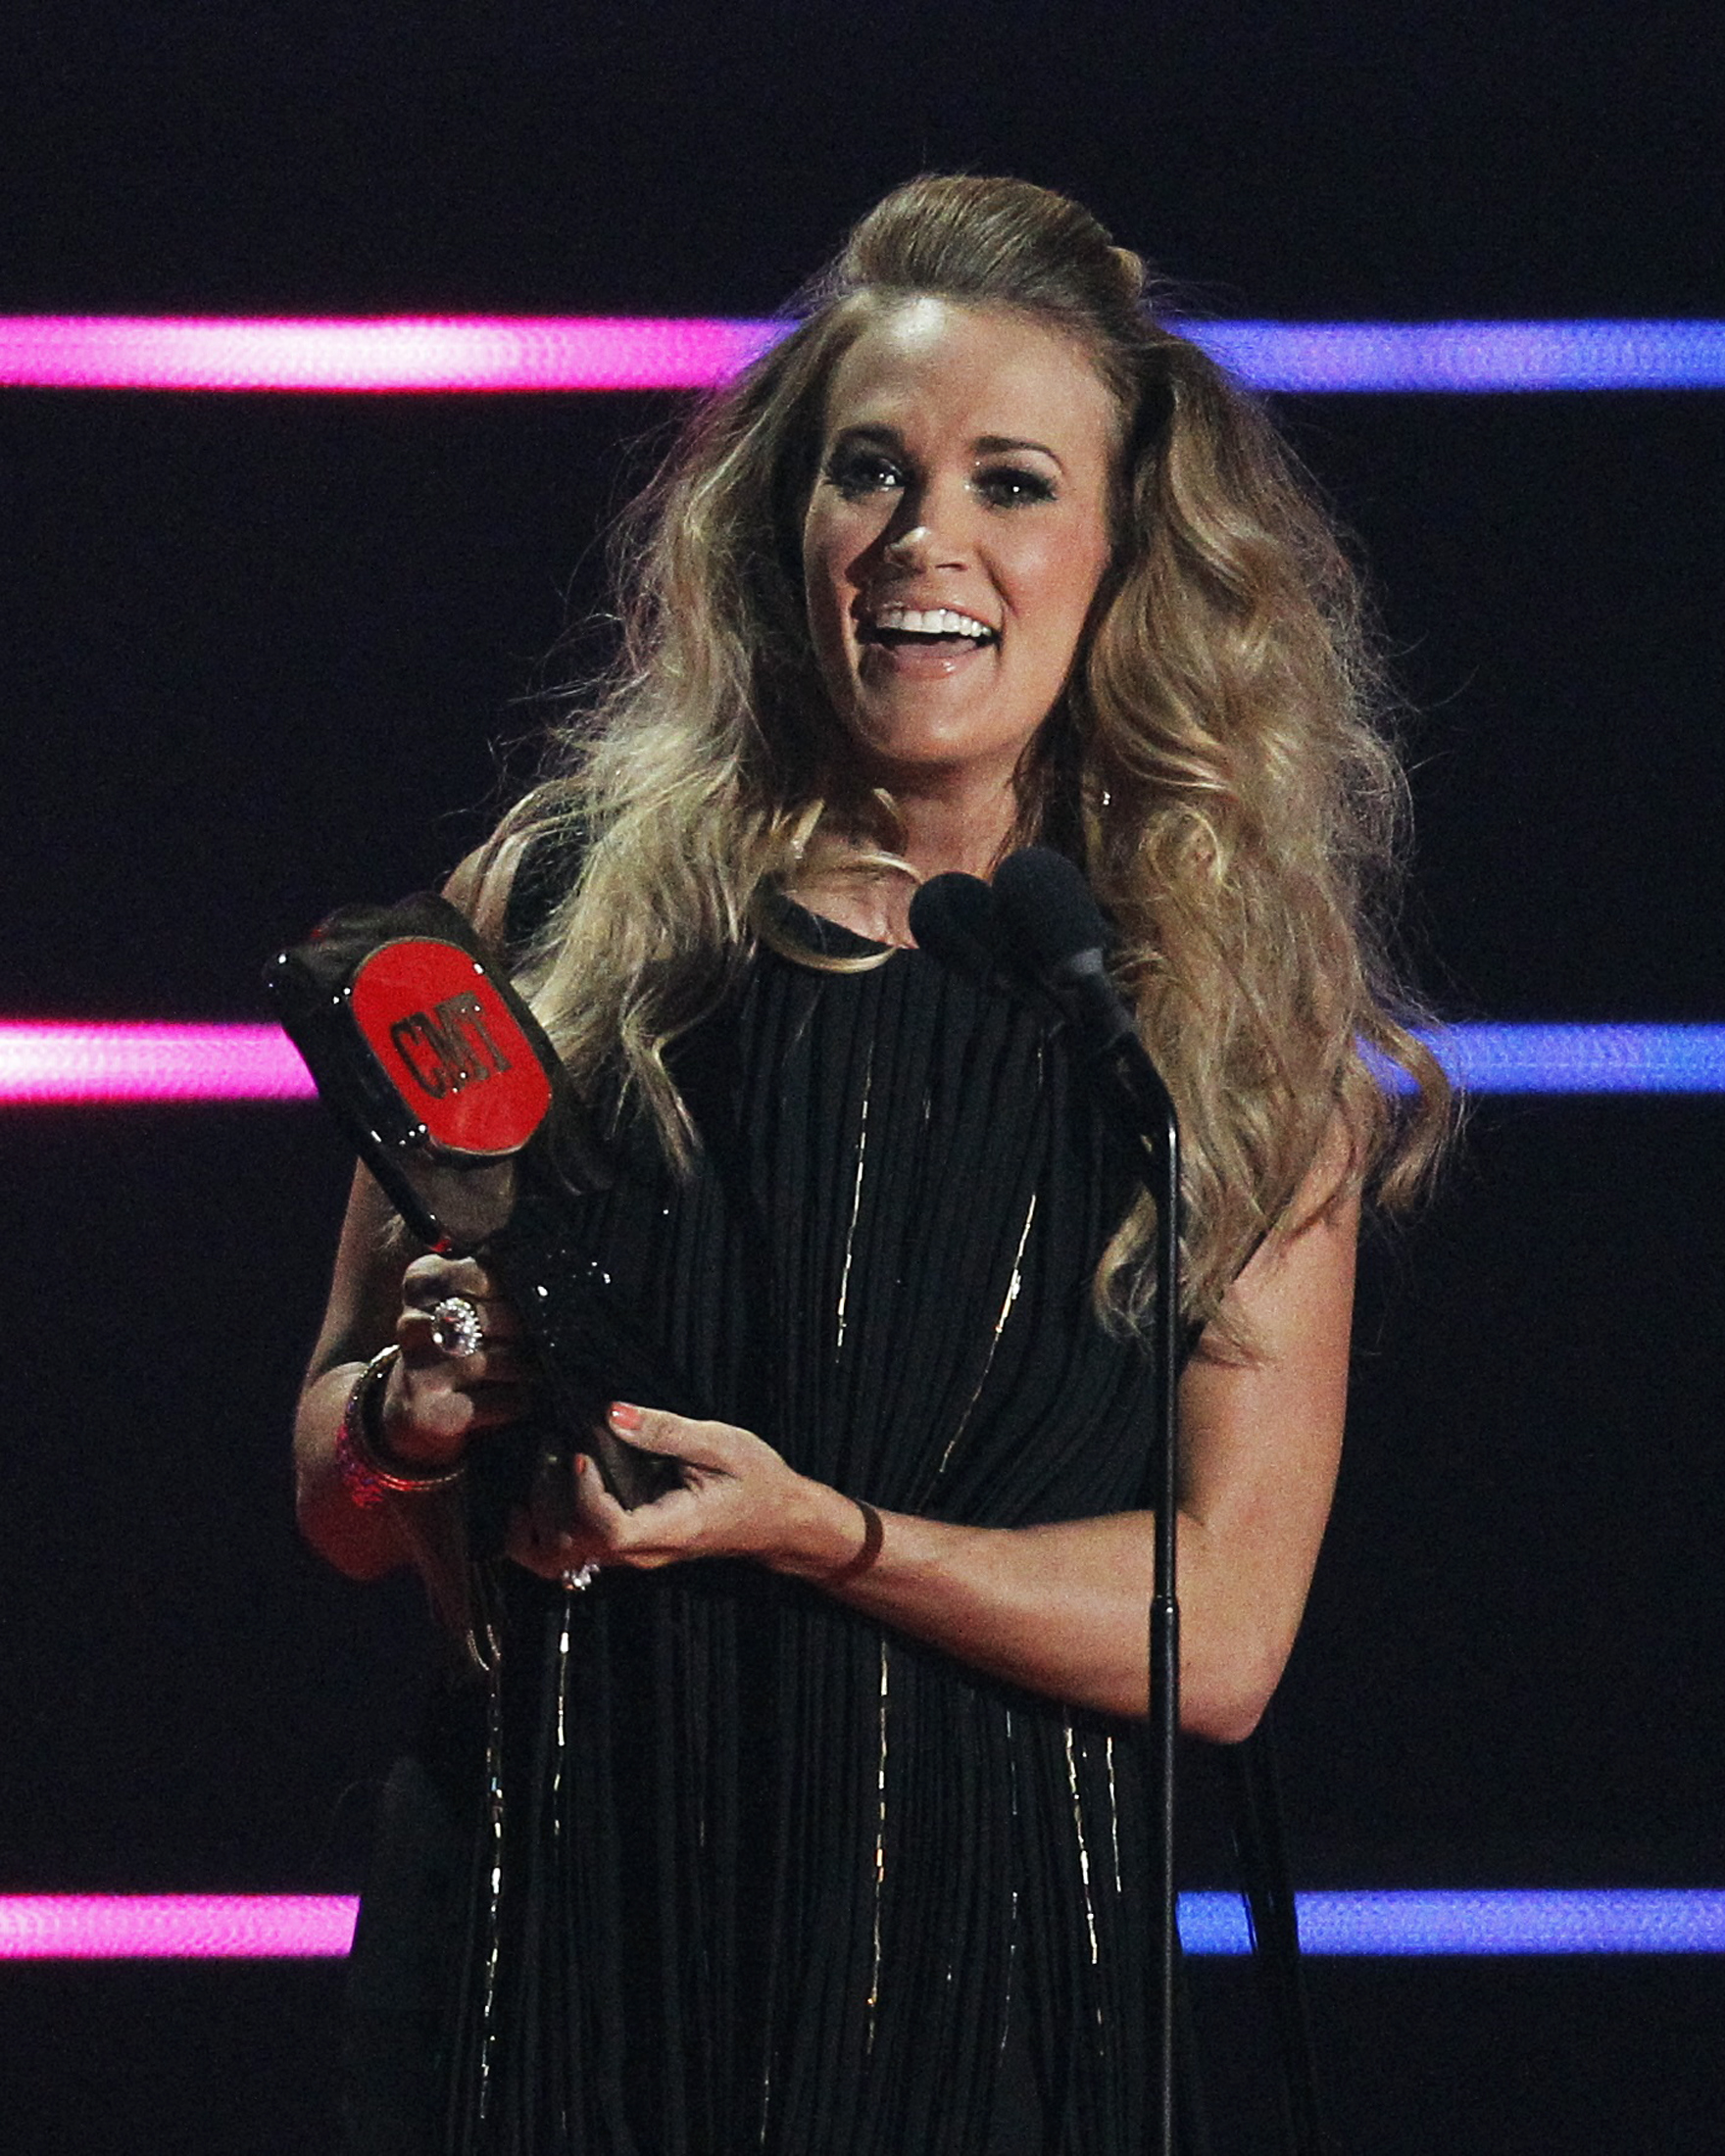 Carrie Underwood accepts Video of the Year Award for  See You Again  during the 2014 CMT Music Awards in Nashville on June 4, 2014